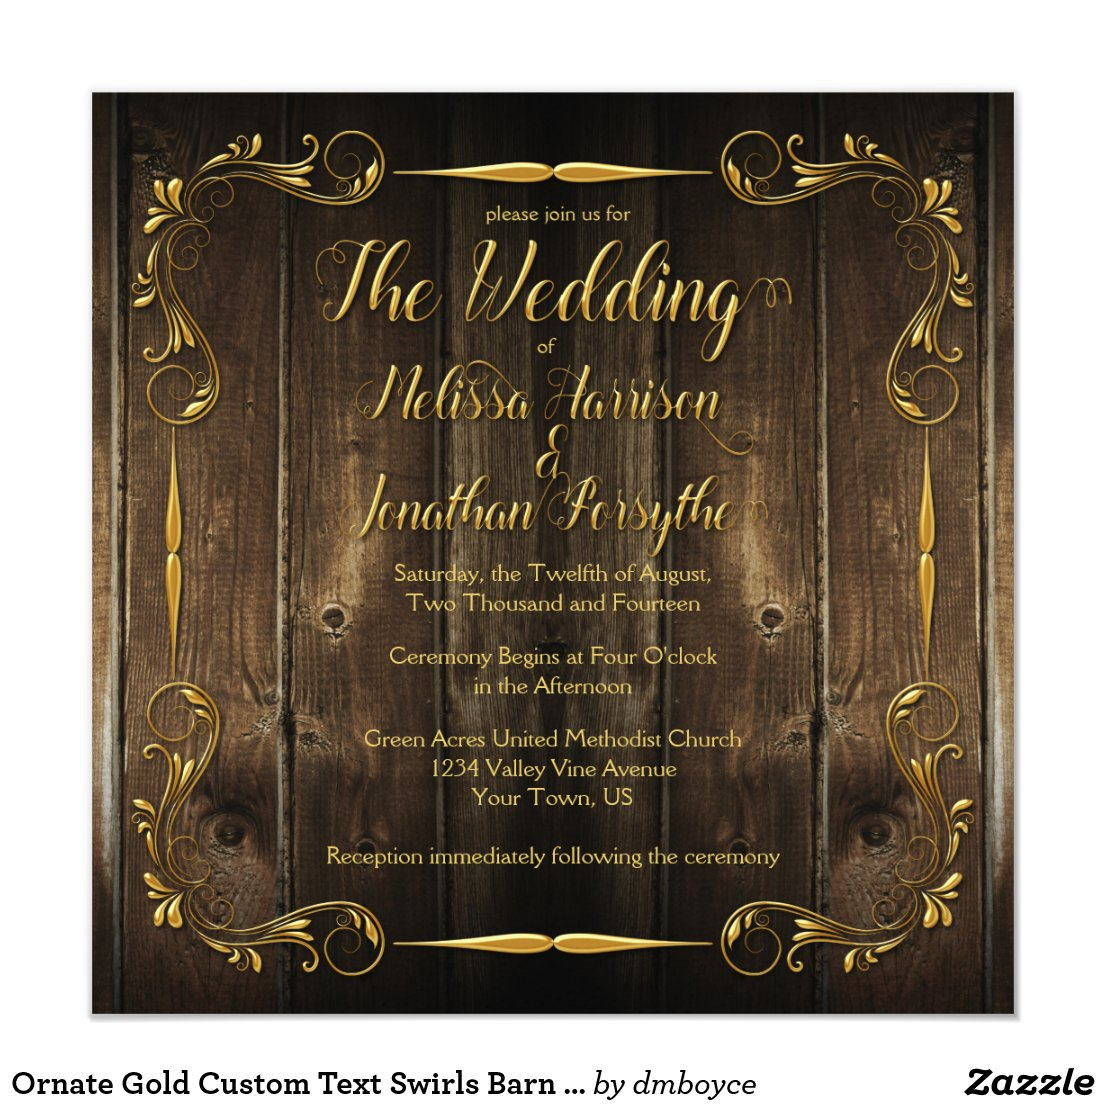 Ornate Gold Custom Text Swirls Barn Wood Wedding